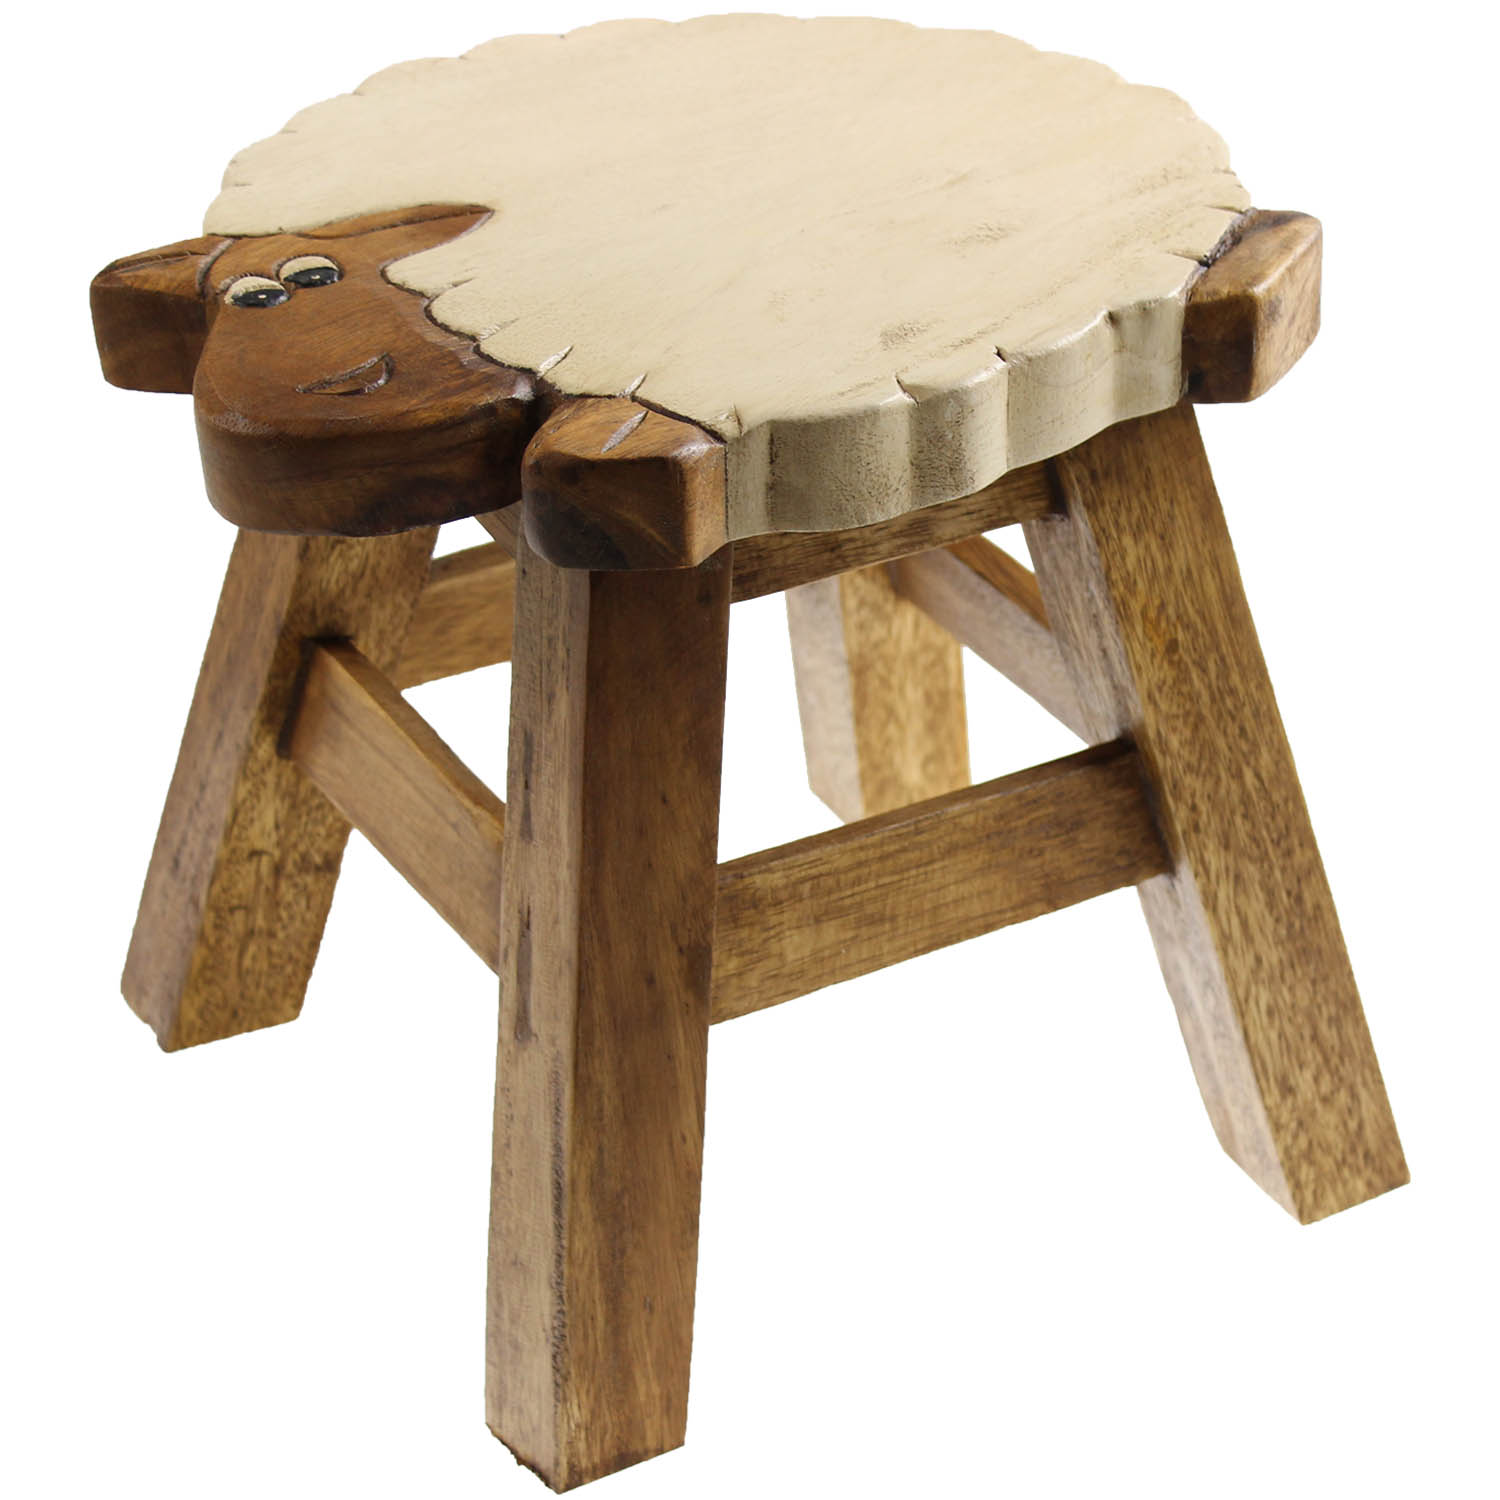 Kids Wooden Stool Solid Wood Wooden Round Sheep Design Kids Foot Stool